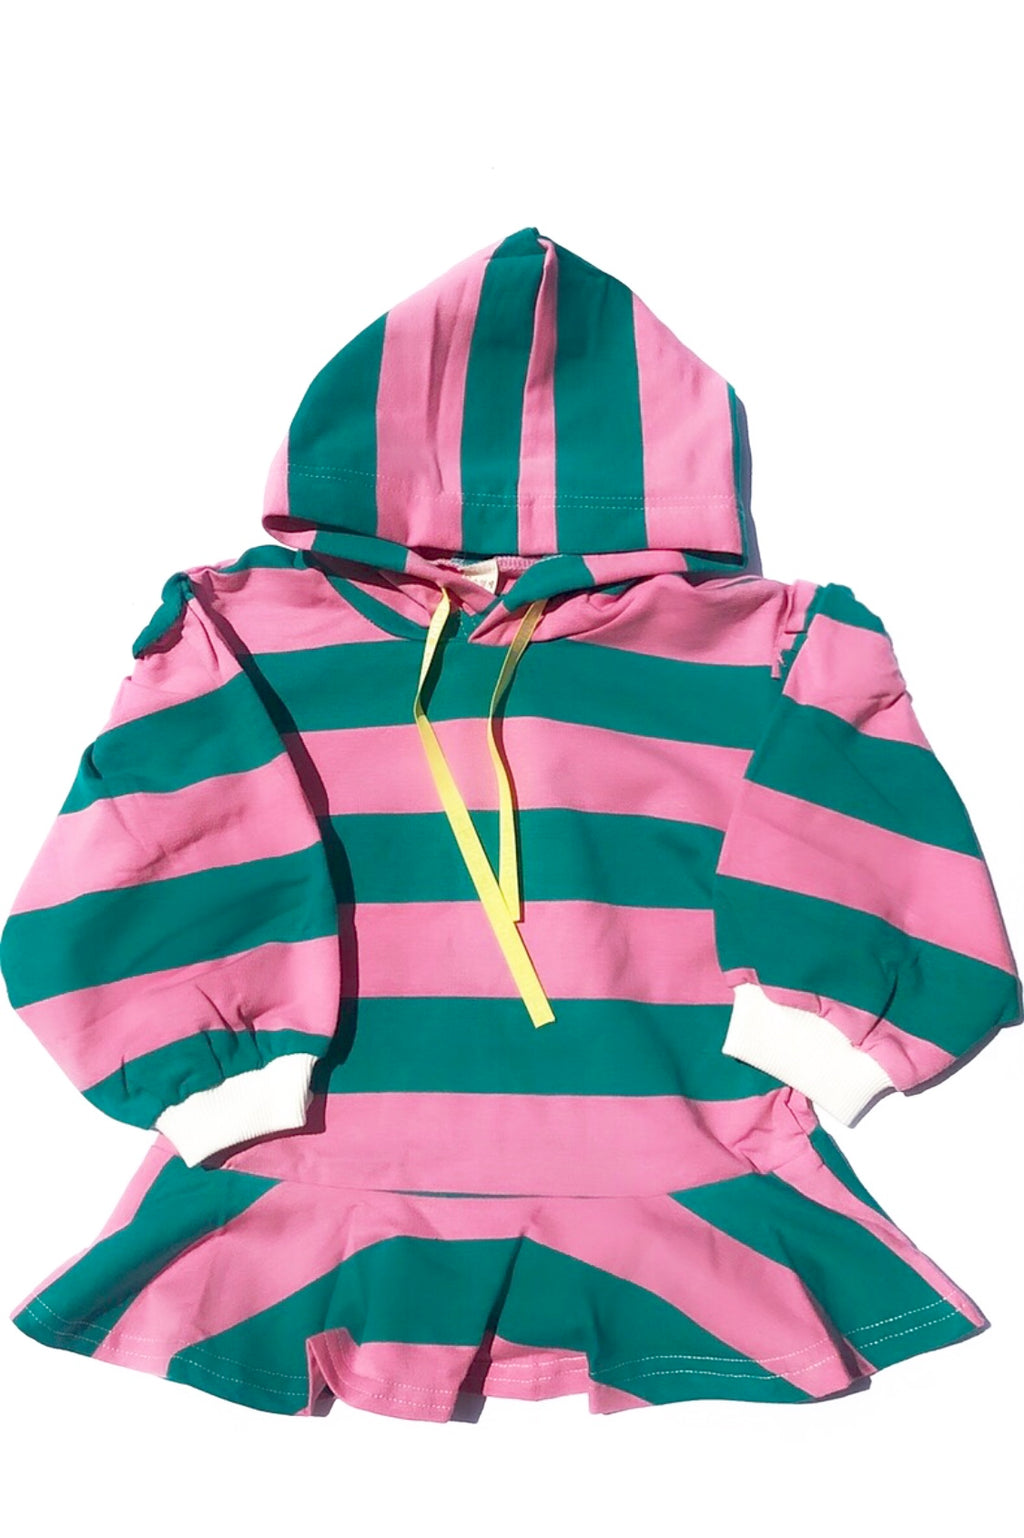 PRETTY IN PINK & GREEN HOODIE